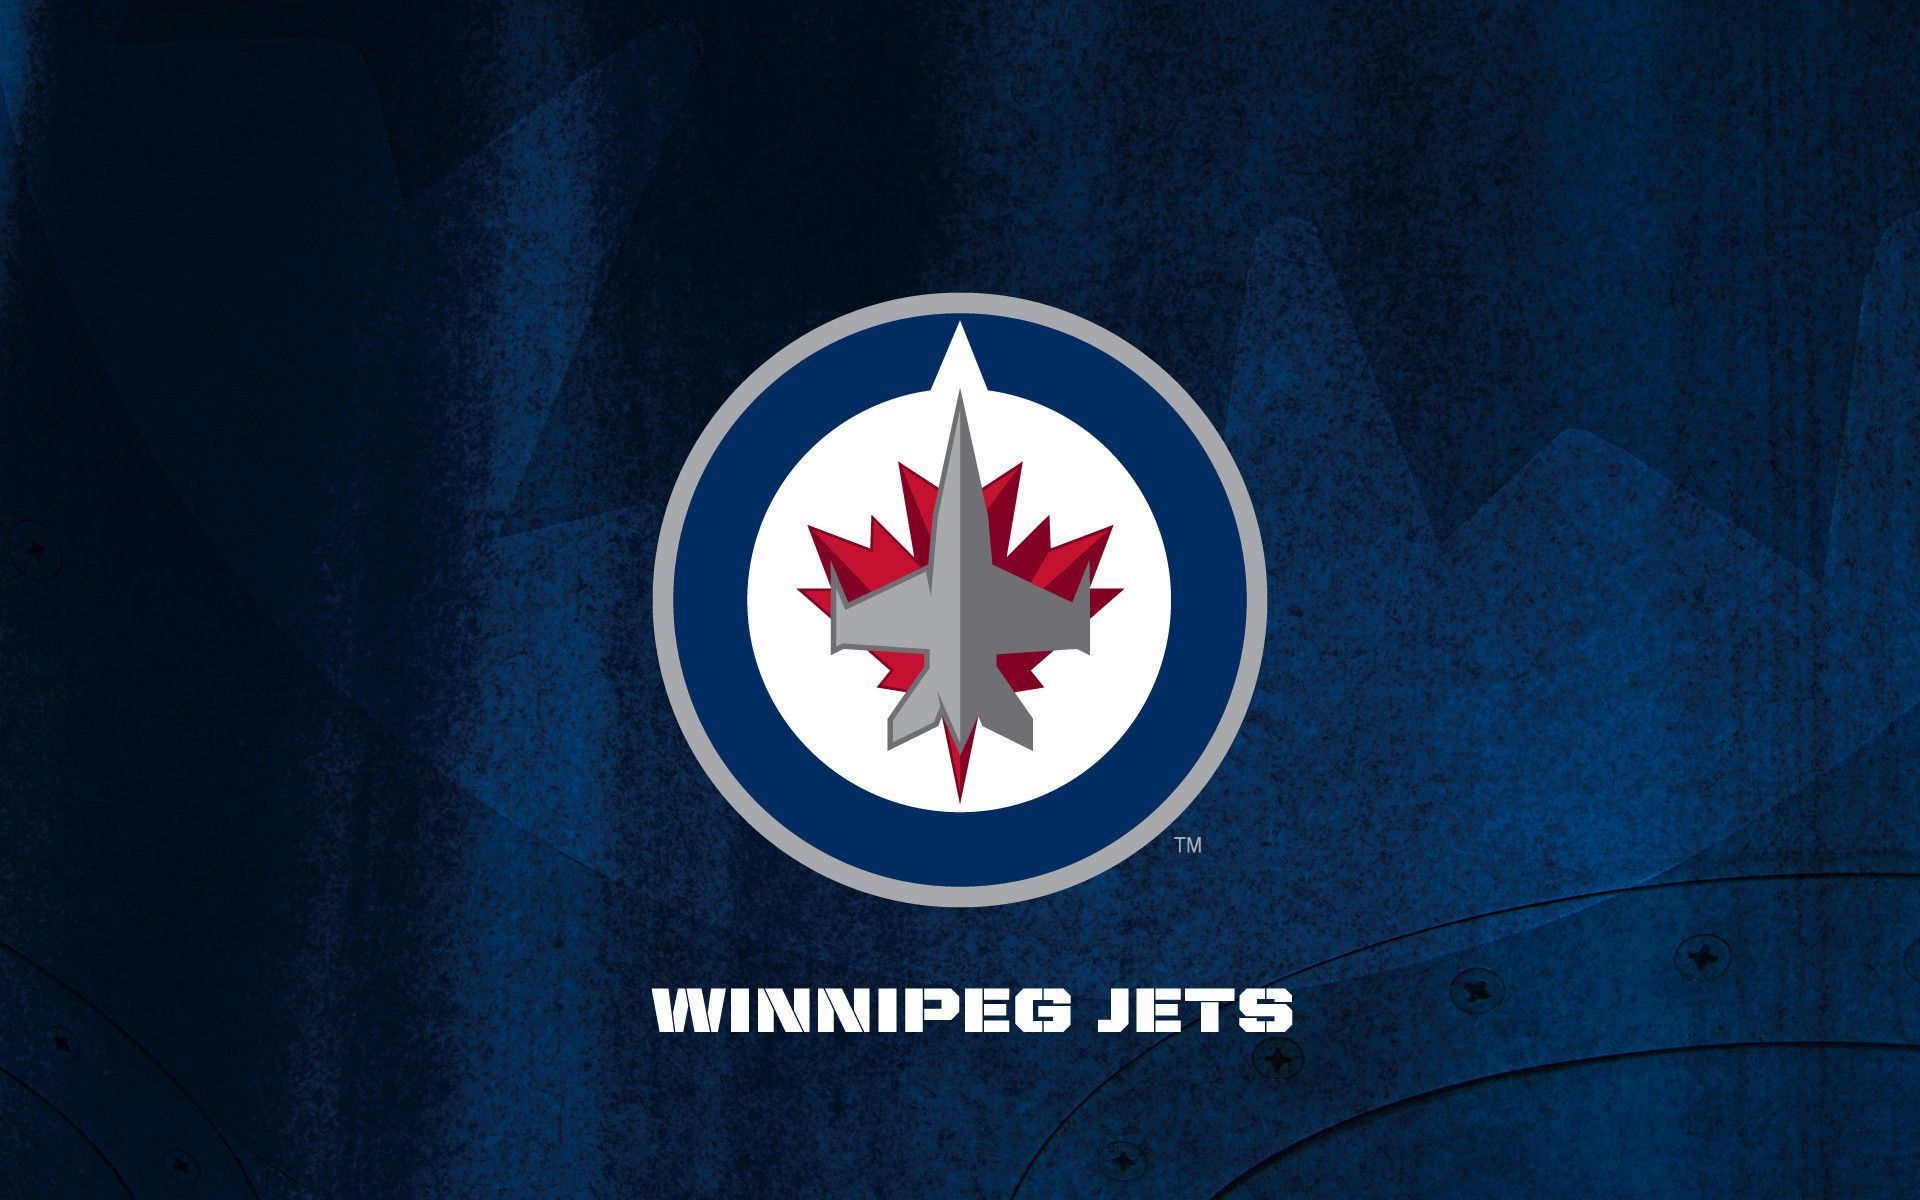 Winnipeg Jets Wallpapers Desktop 1920x1200   4USkY 1920x1200